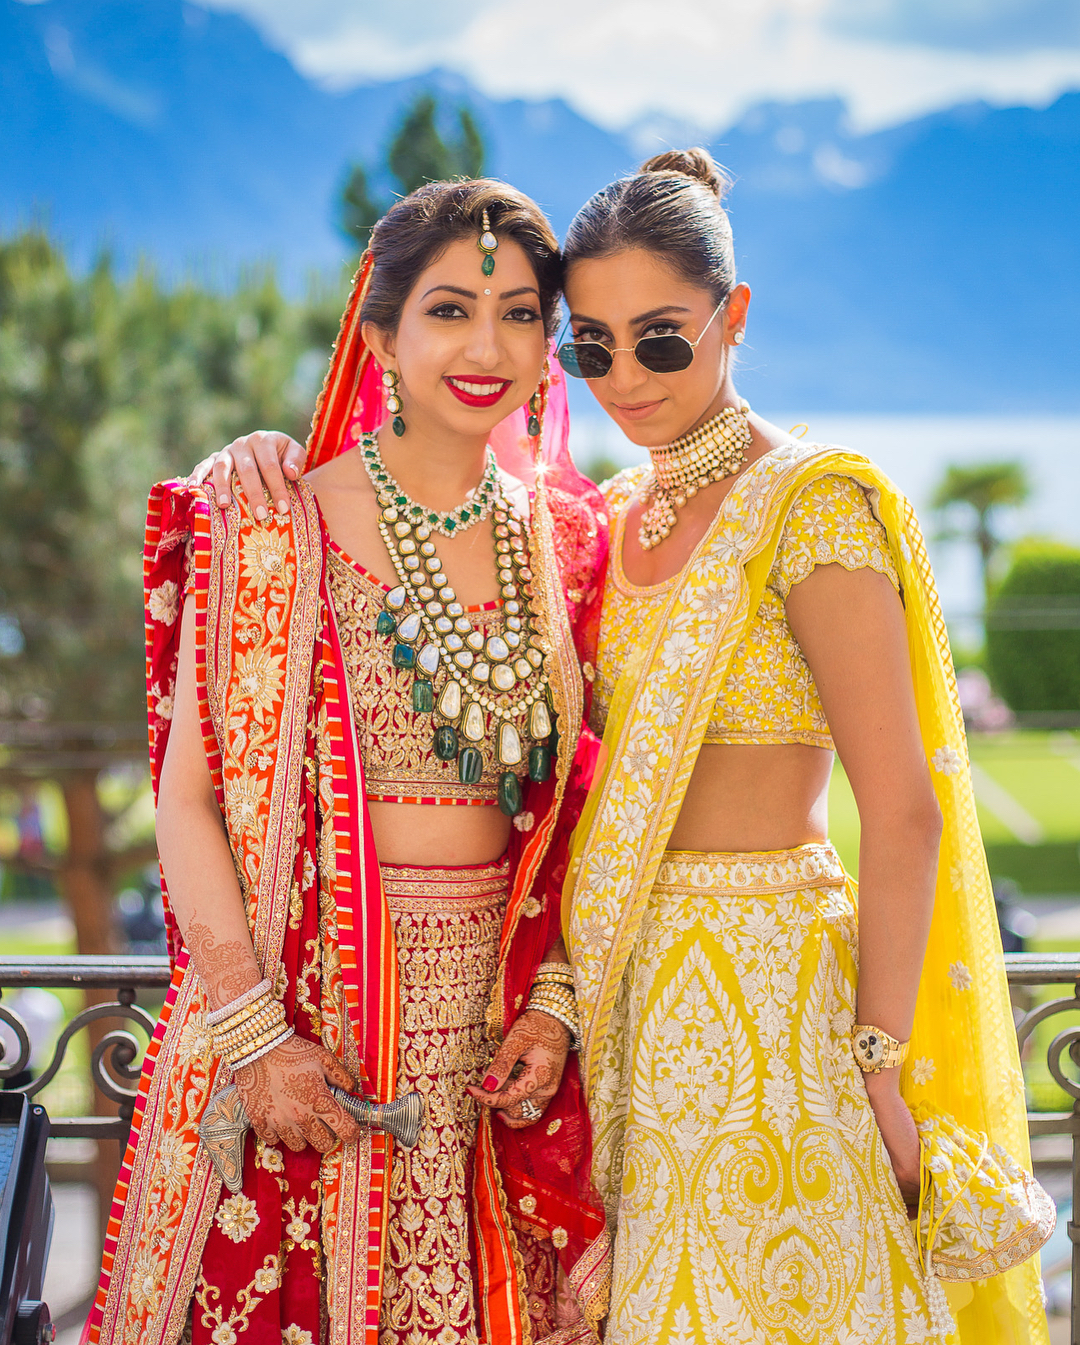 nri wedding, tanya ganwani wedding